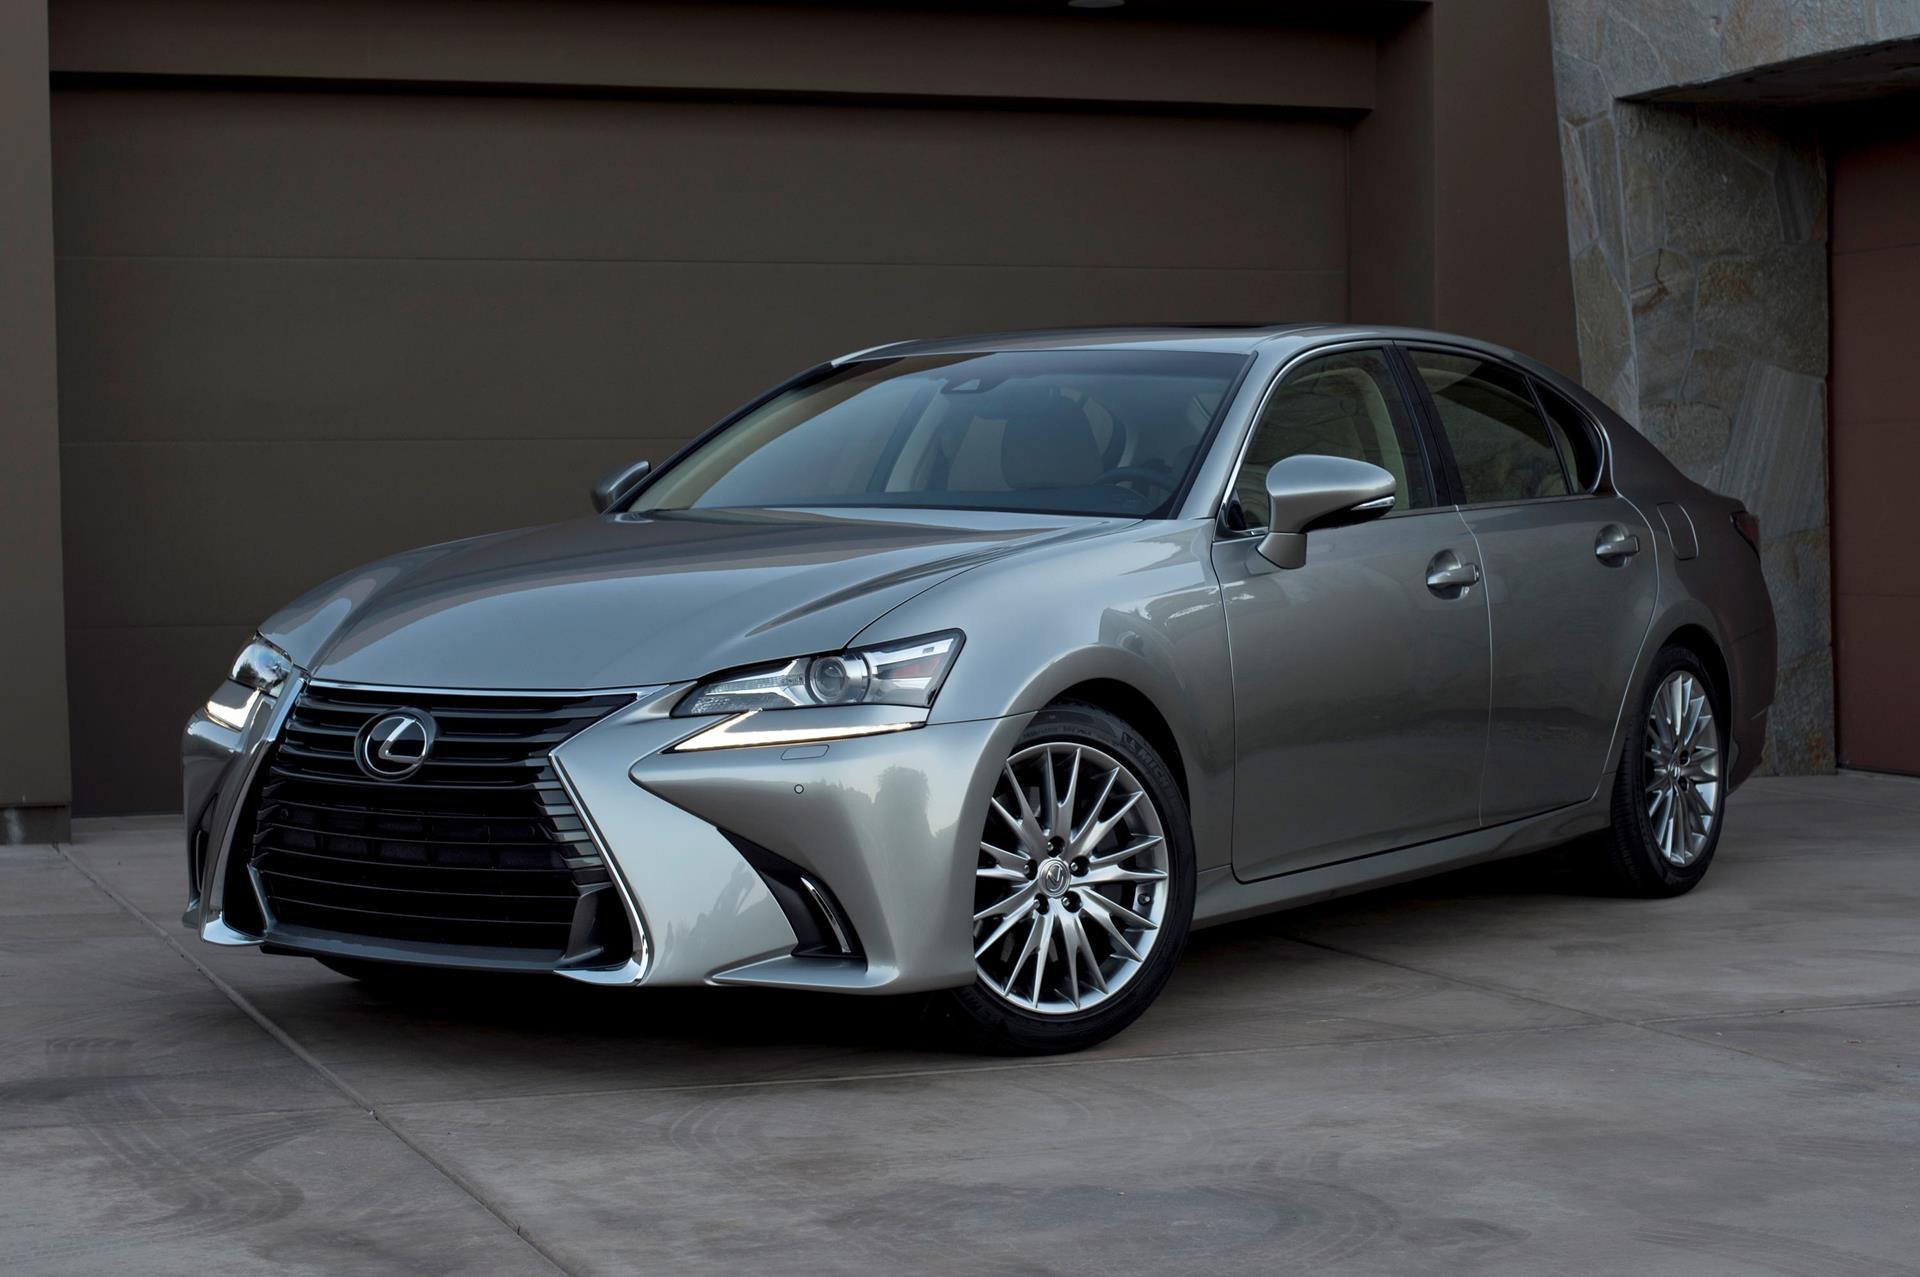 2016 Lexus GS 200t News and Information